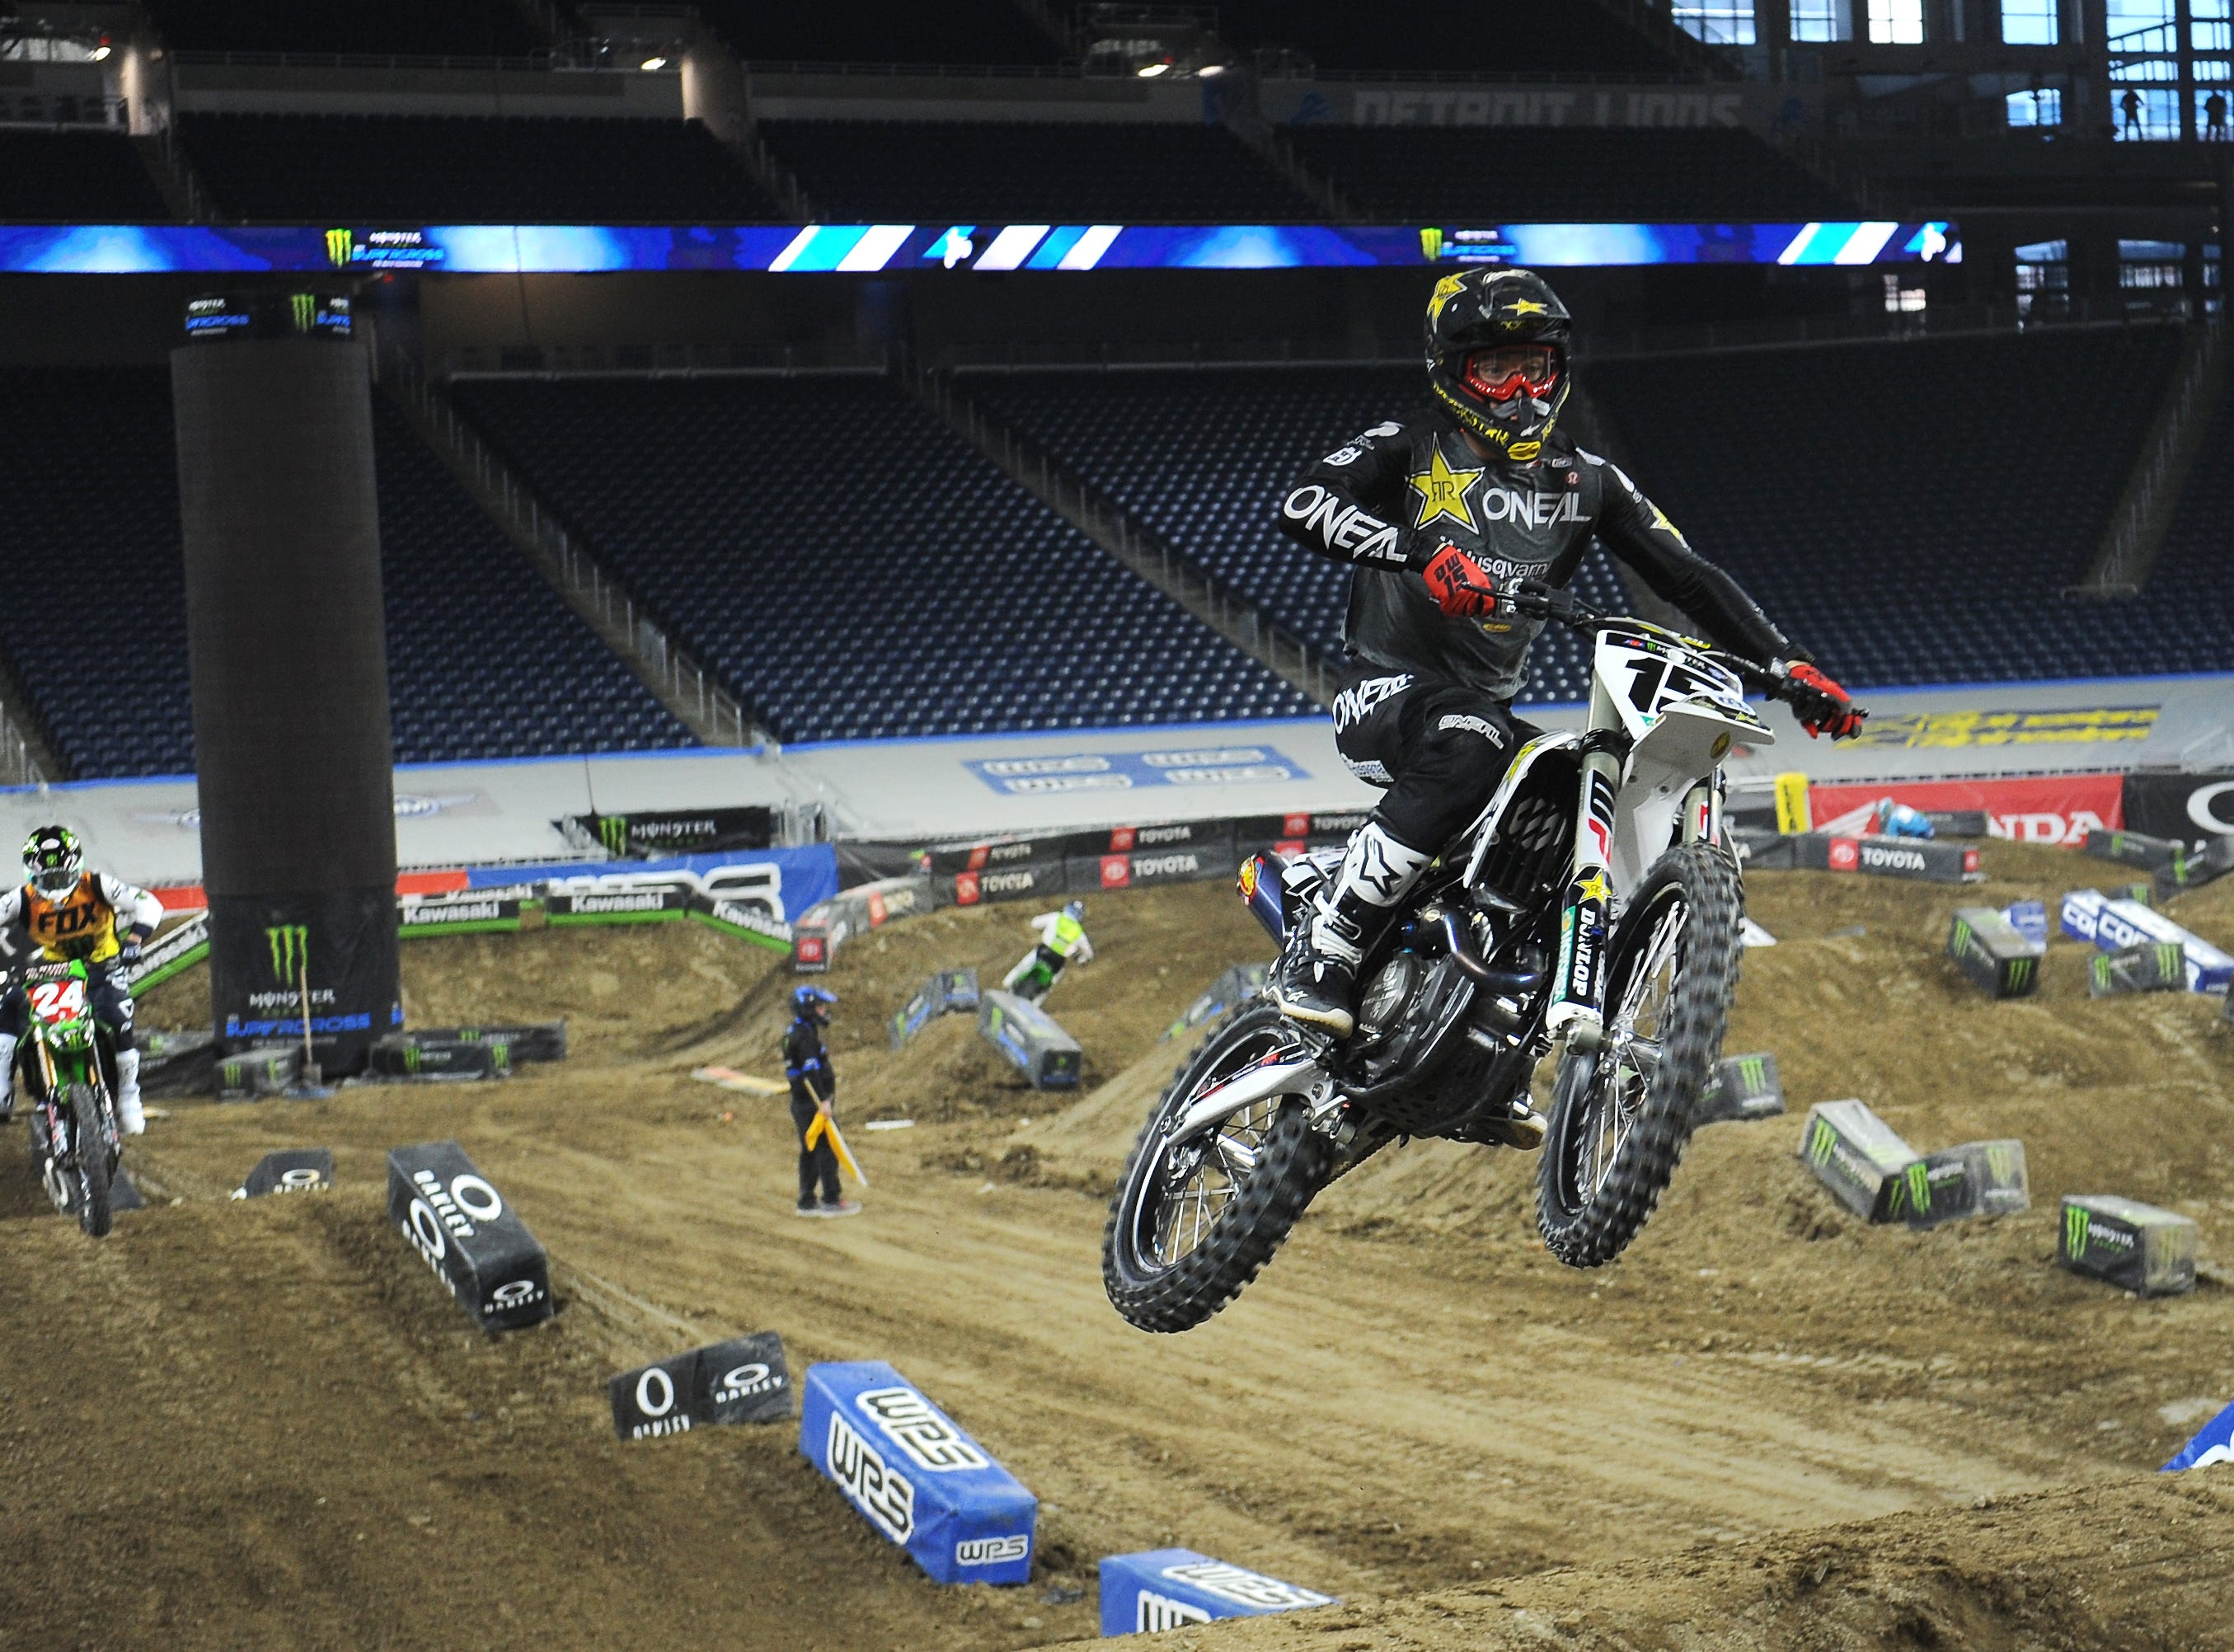 Top Supercross rider Dean Wilson (15) catches some serious air for the 2019 Monster Energy Supercross at Ford Field in Detroit on Friday, February 22, 2019.